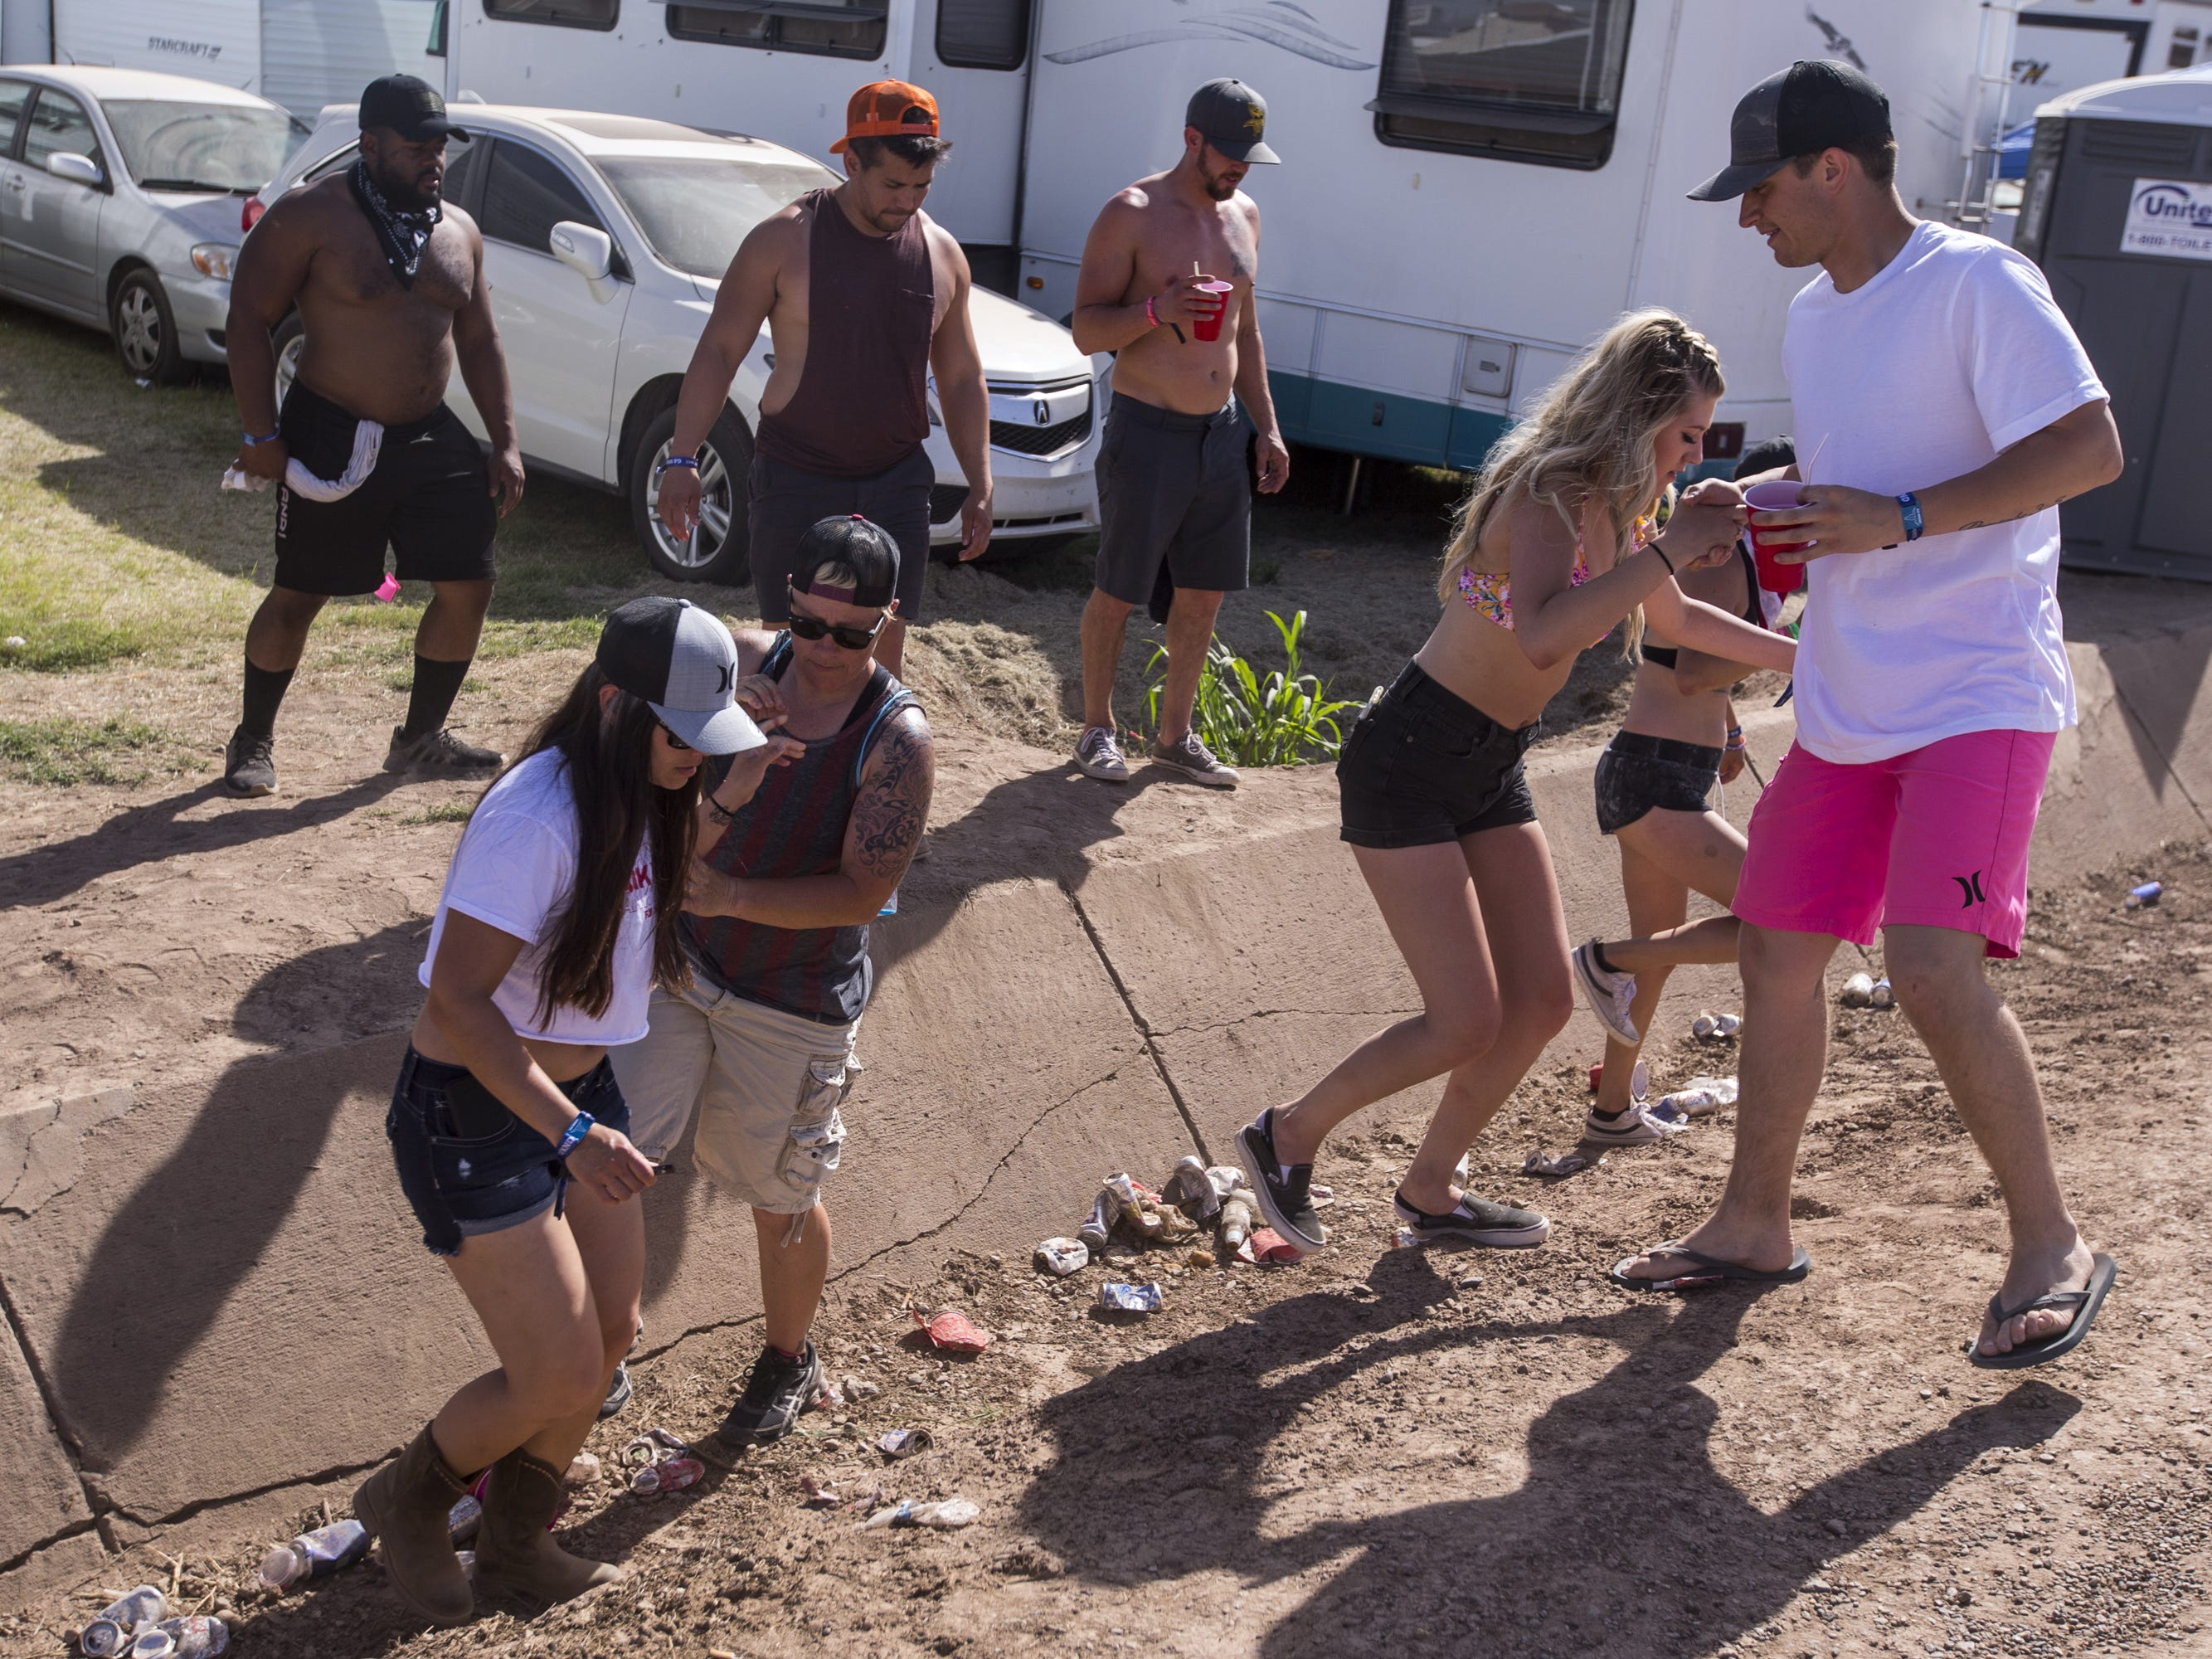 Festival-goers cross a drainage ditch on Sunday, April 14, 2019, during Day 4 of Country Thunder Arizona in Florence, Ariz.